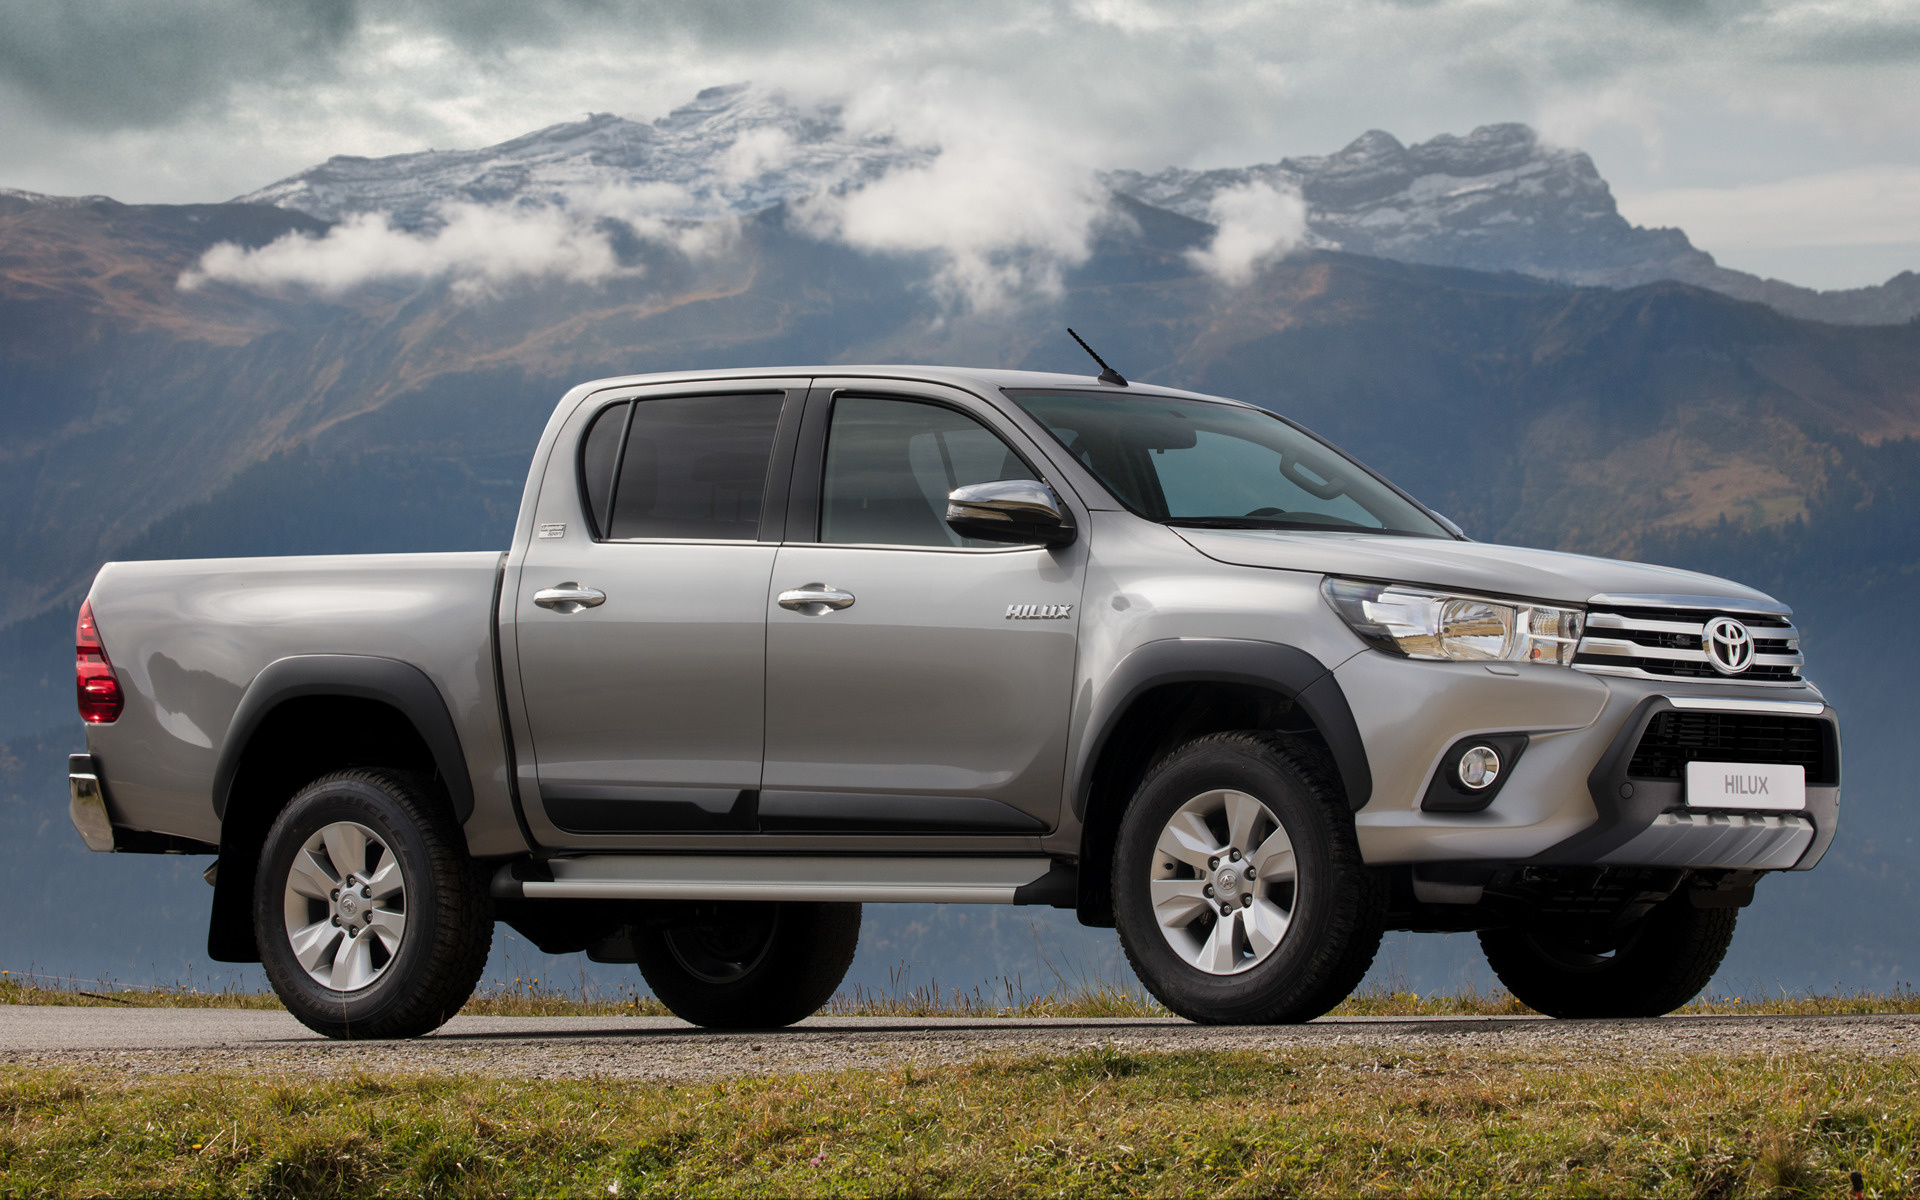 2018 Toyota Hilux Double Cab Legende Sport Wallpapers